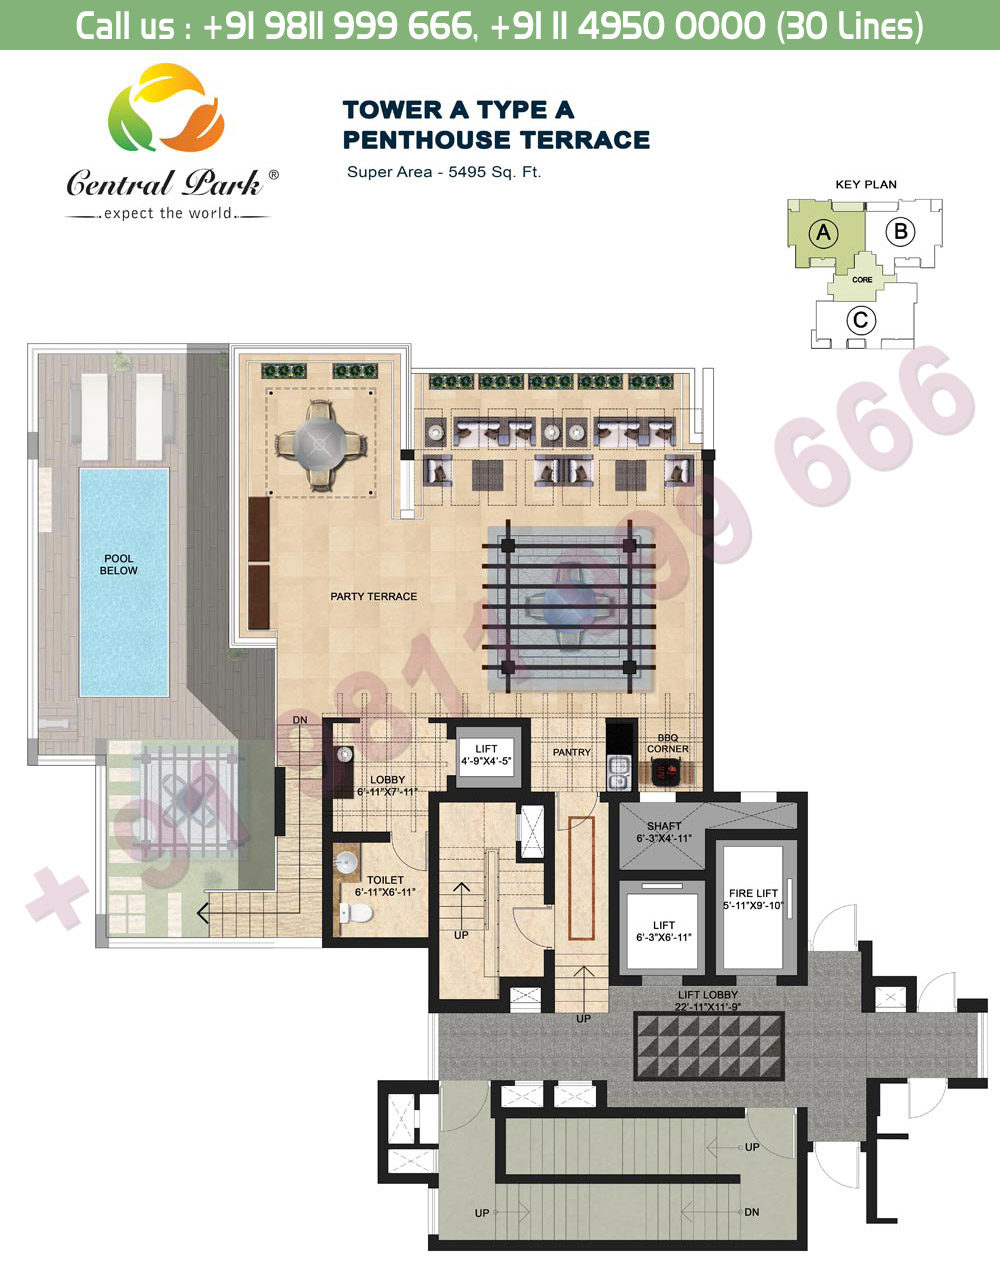 Tower - A, Type - A, Penthouse Terrace Floor:  5495 Sq. Ft